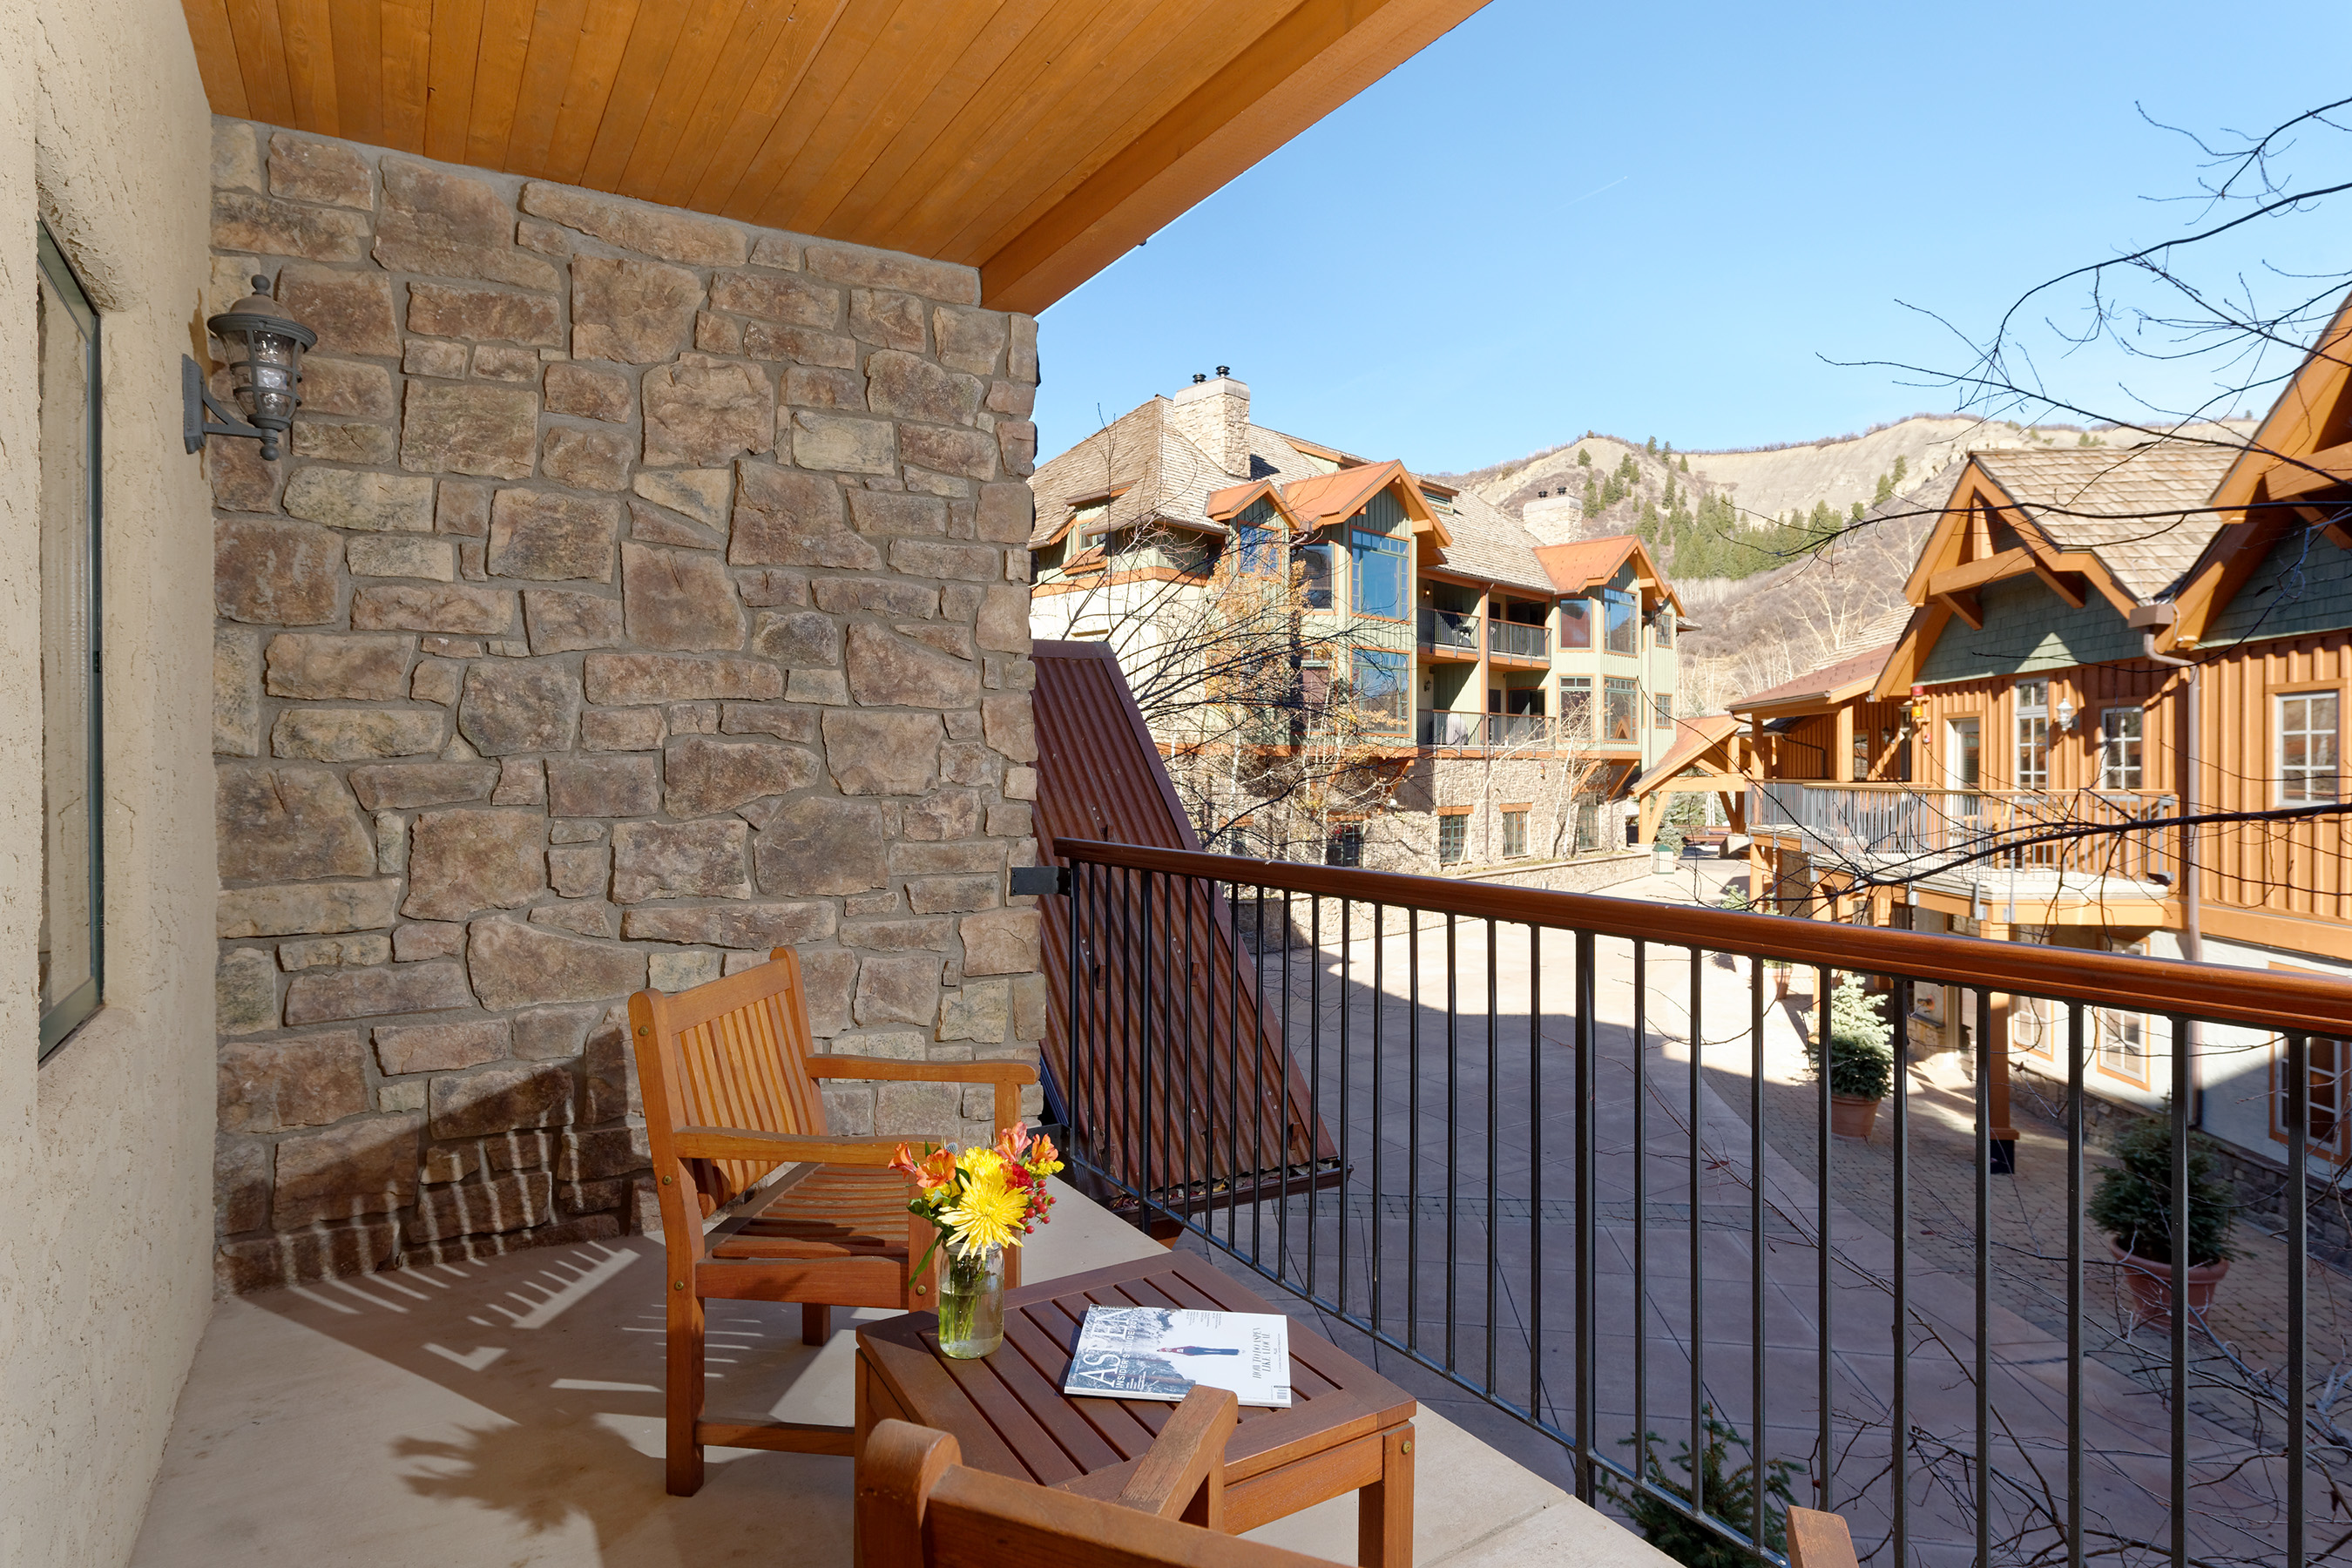 065 Timbers Club Court A6-VII  Snowmass Village Photo 16